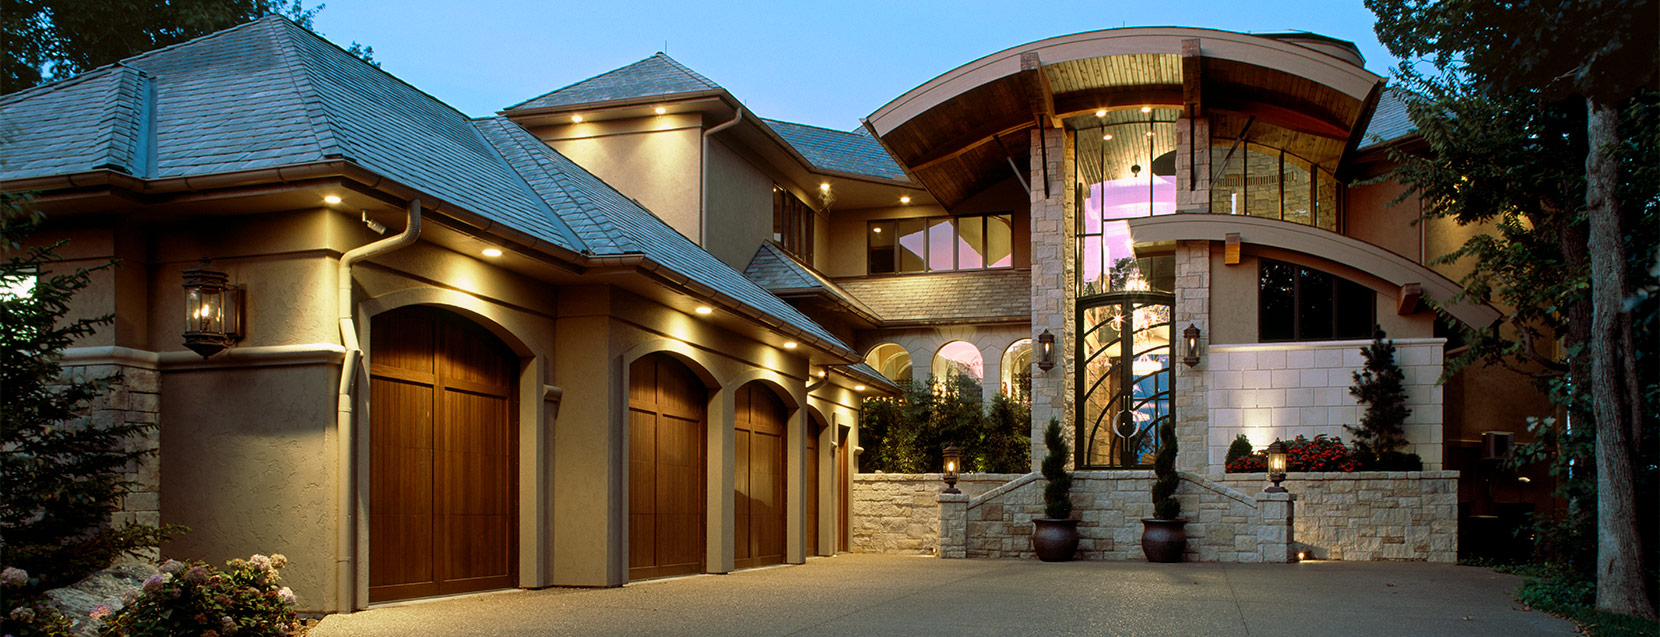 Custom Homes And Home Remodeling